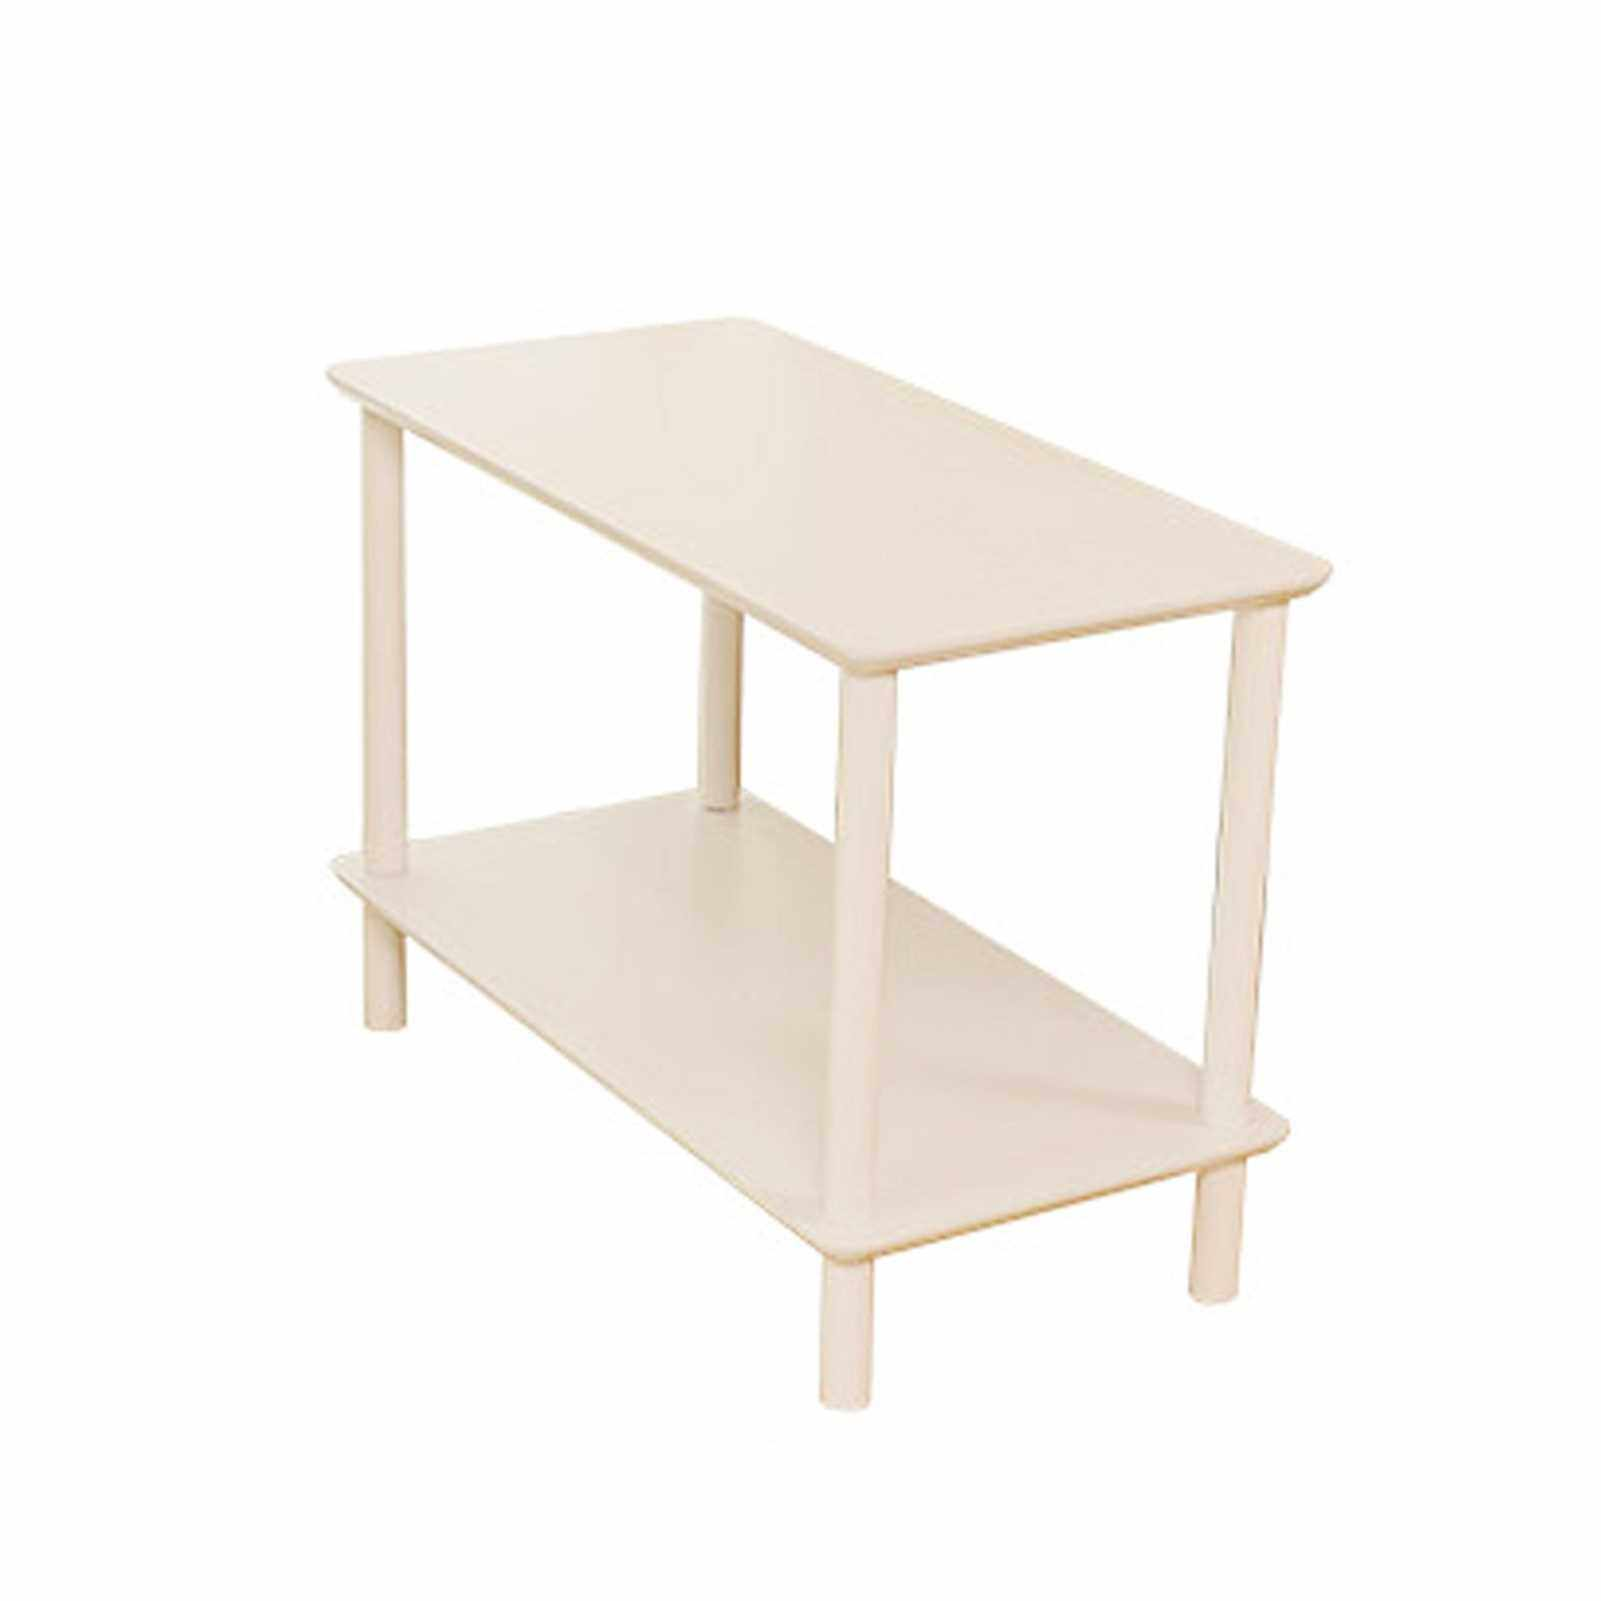 Best Selling 2-Tier End Table Coffee Side Table Nightstand with Open Design Wood Grain Pattern Home Decor Furniture for Living Room Bedroom Balcony 40*30*42cm (White)